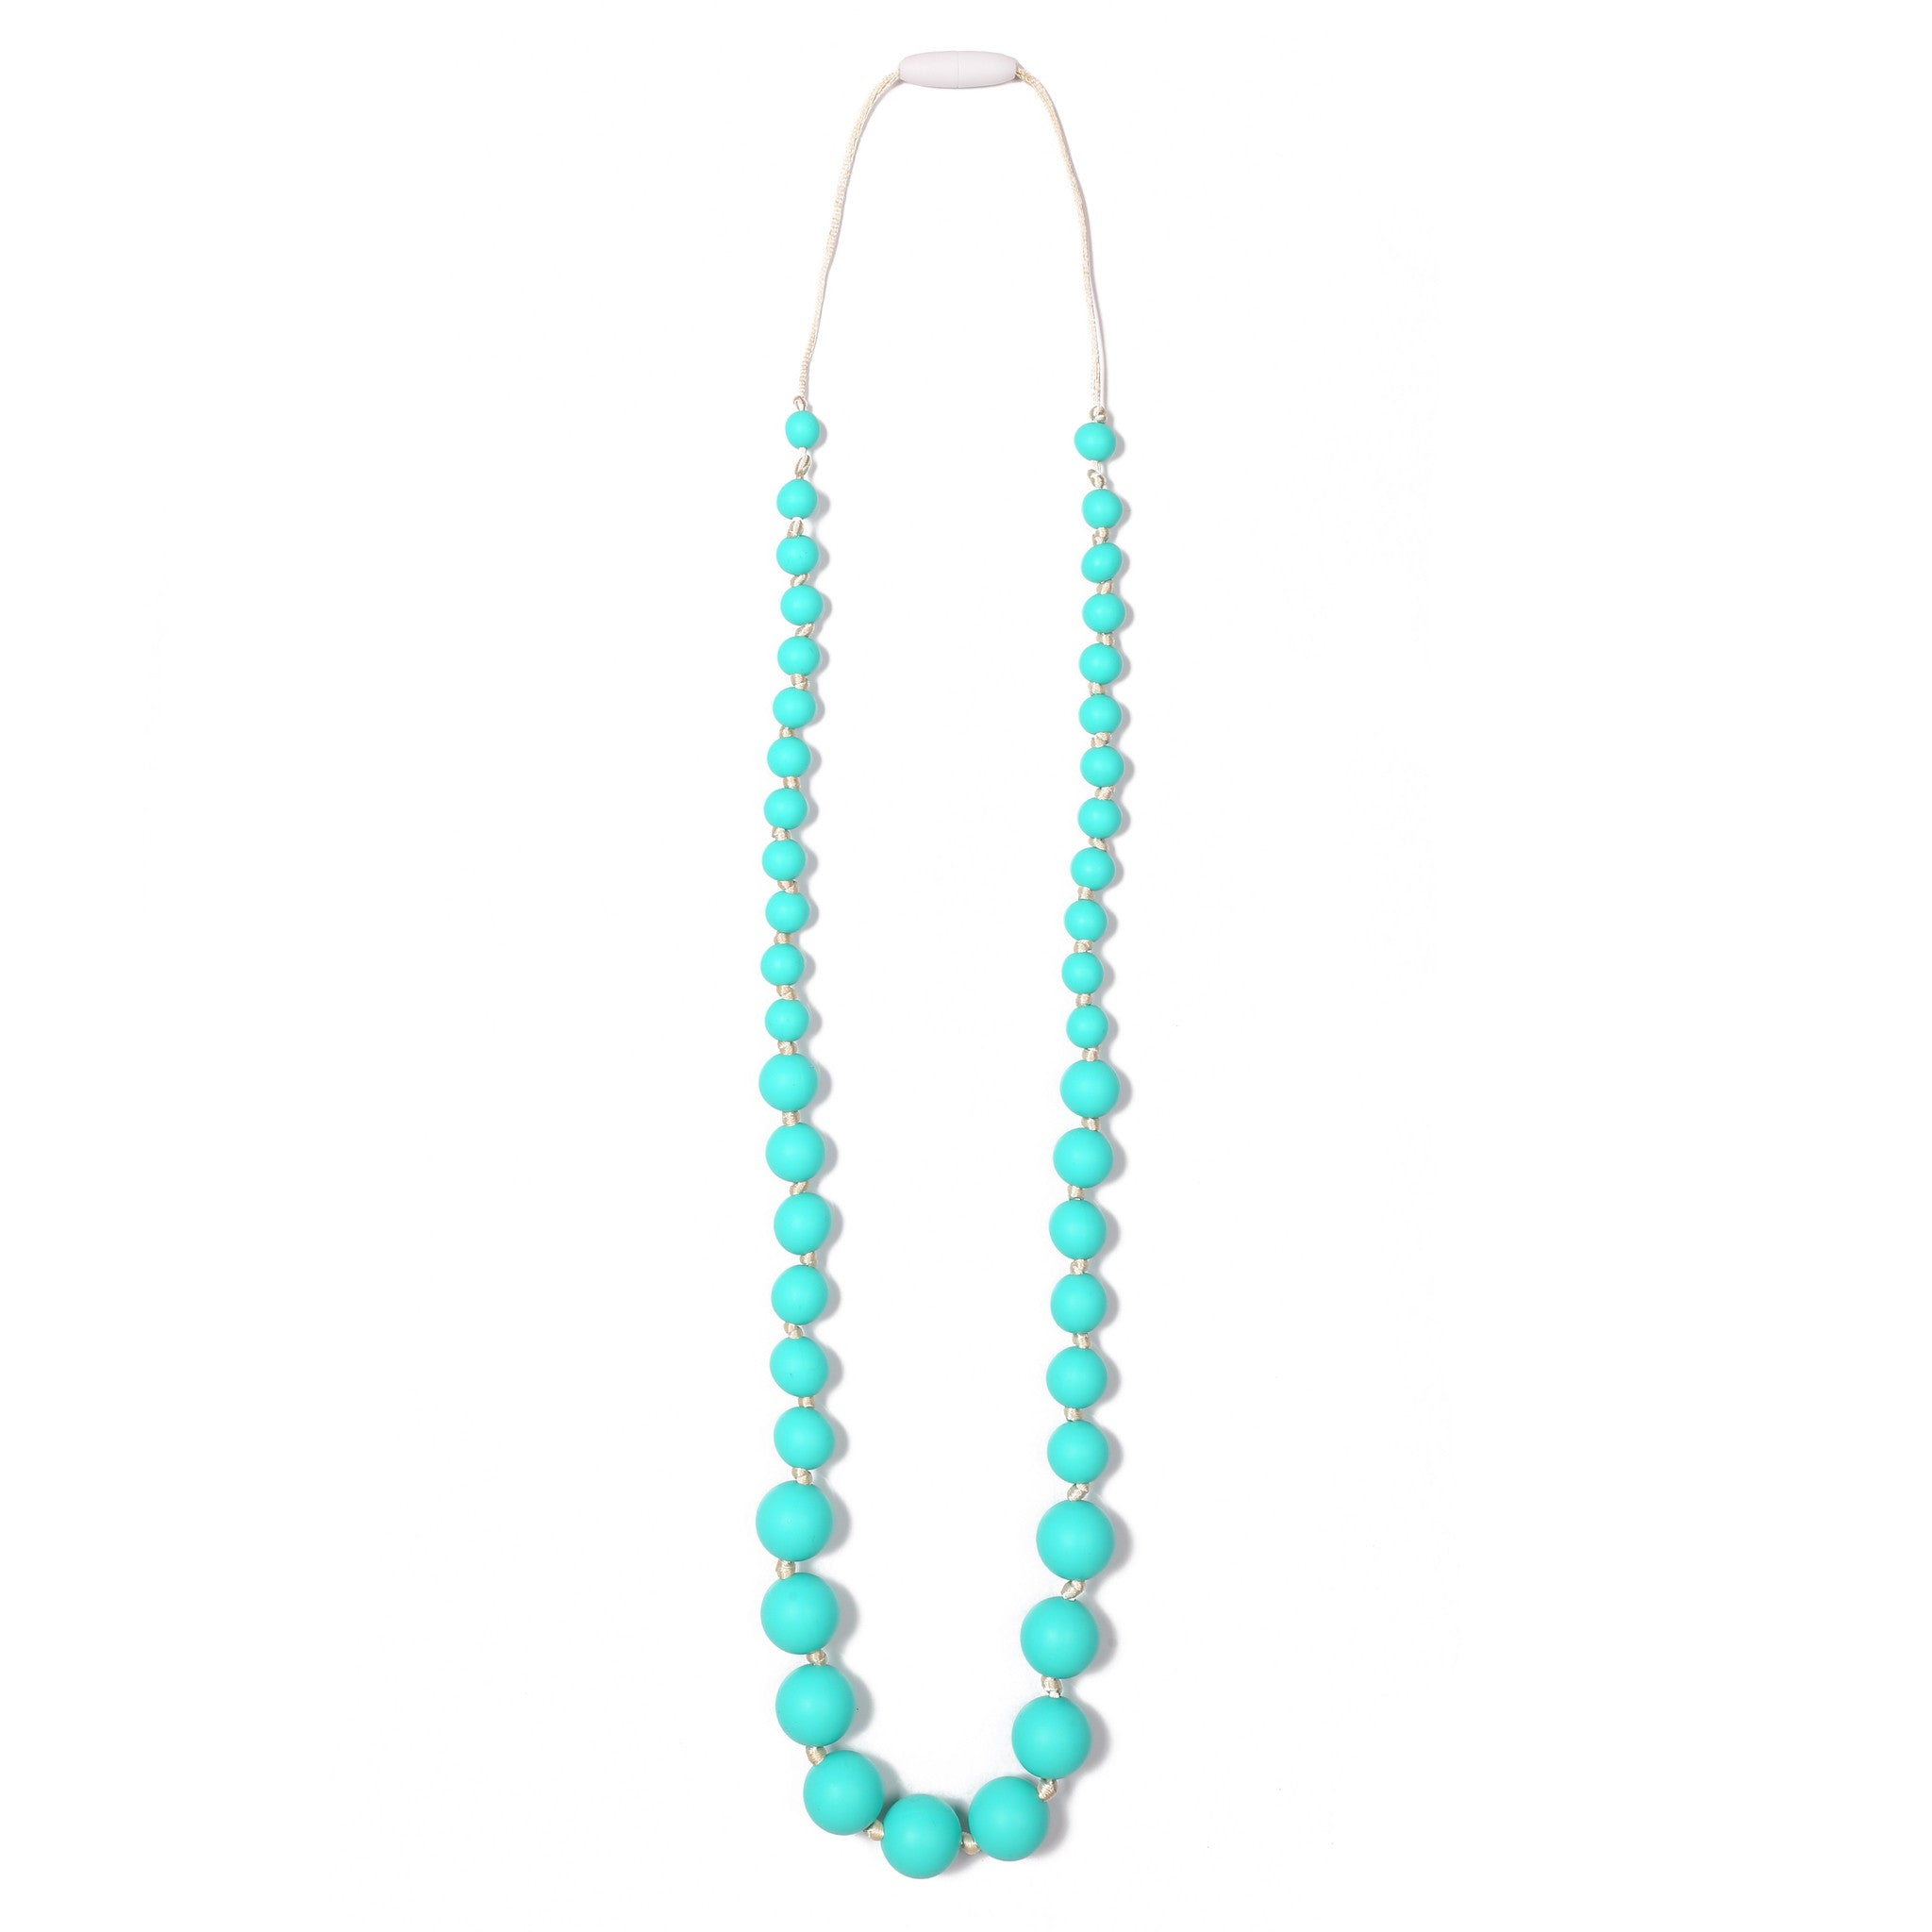 Audrey Teething Necklace - Turquoise